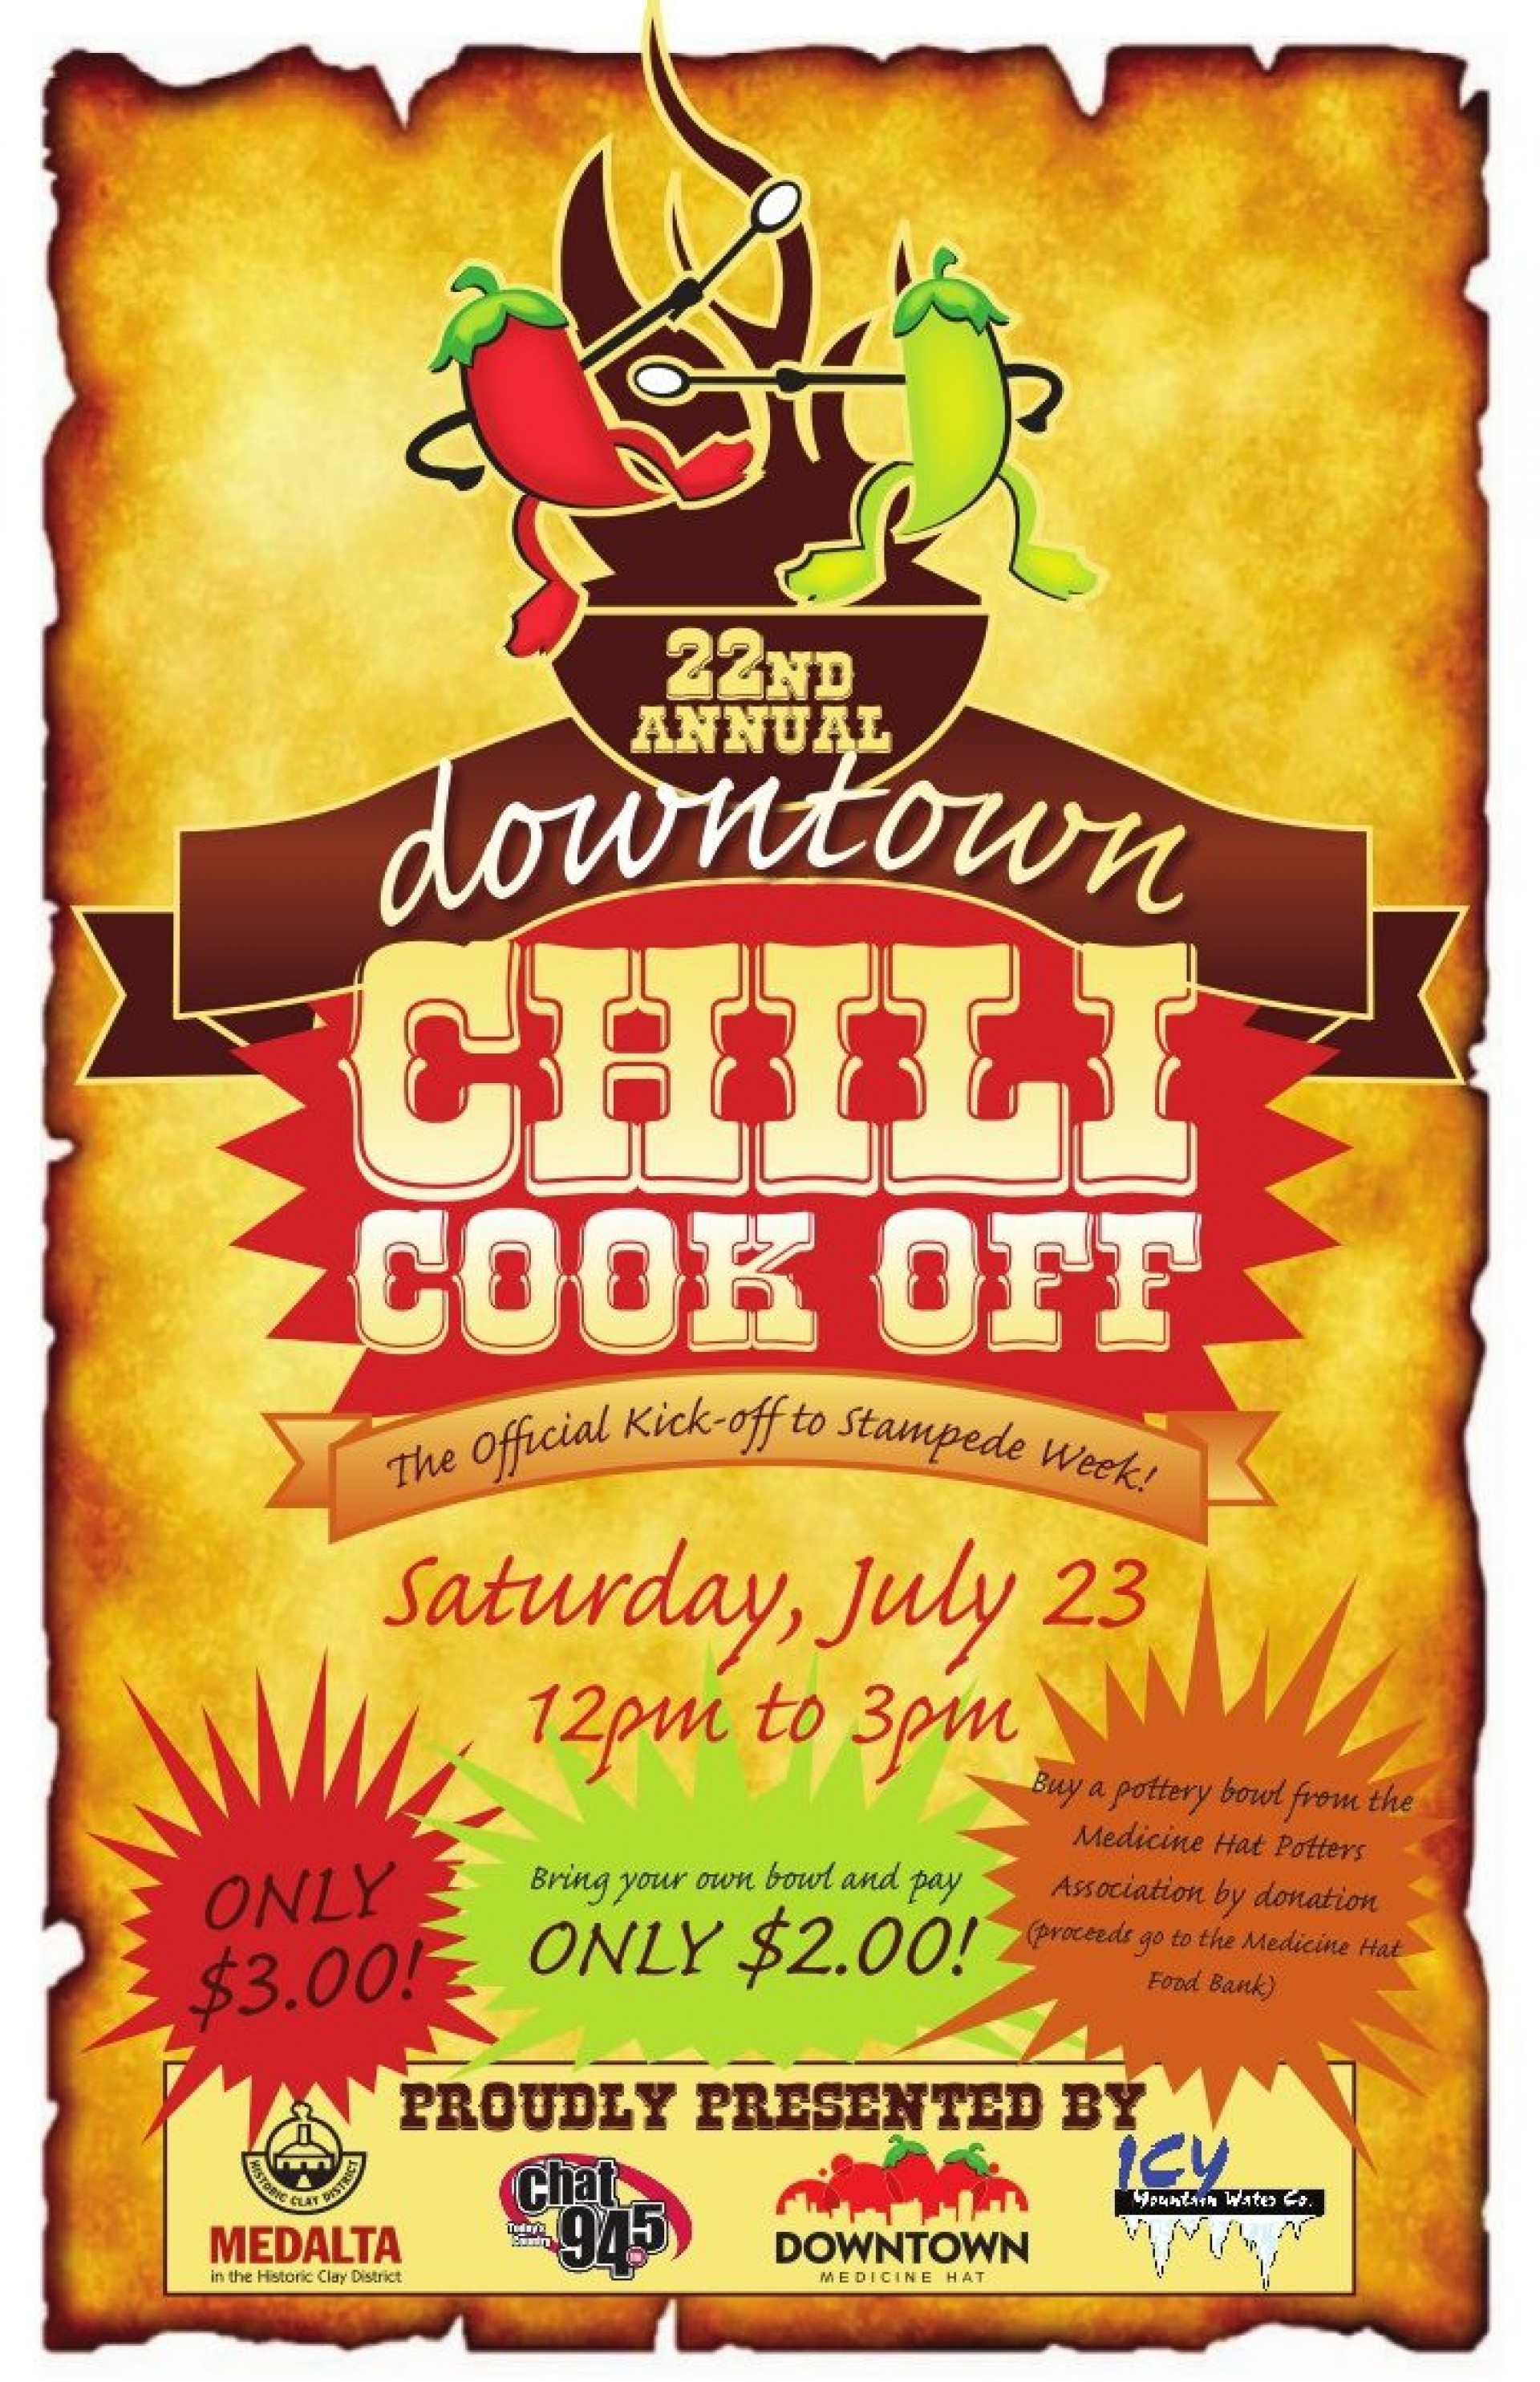 009 Outstanding Chili Cook Off Flyer Template Idea  Halloween Office Powerpoint1920